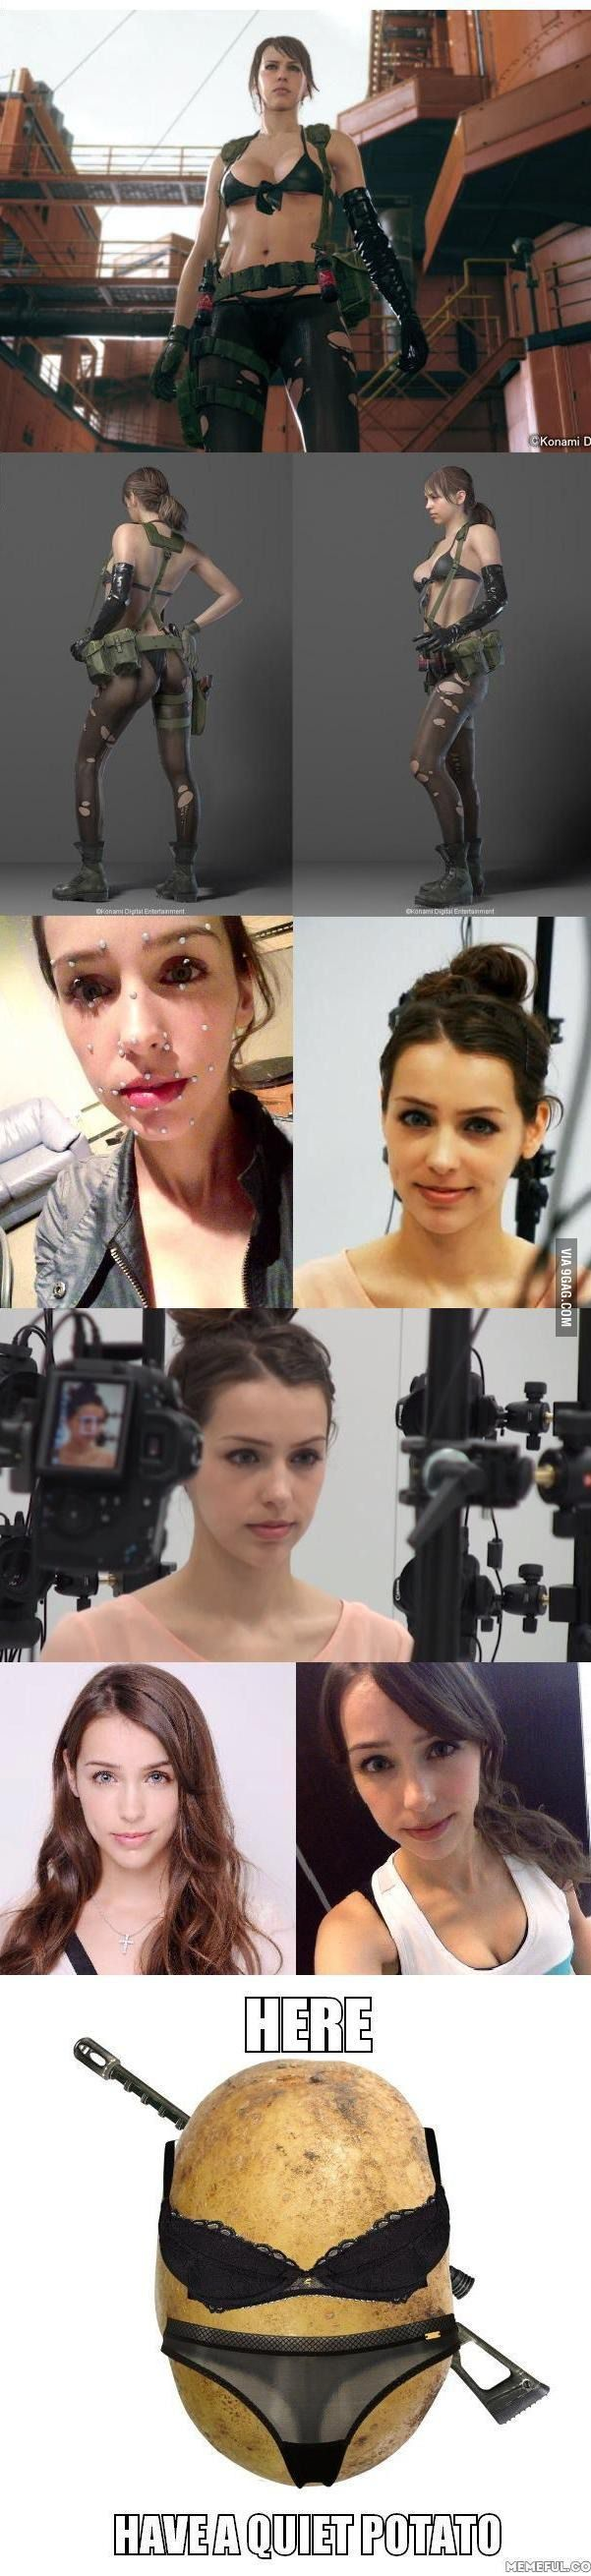 "Stefanie Joosten as ""Quiet"" in Metal Gear Solid V: The Phantom Pain"